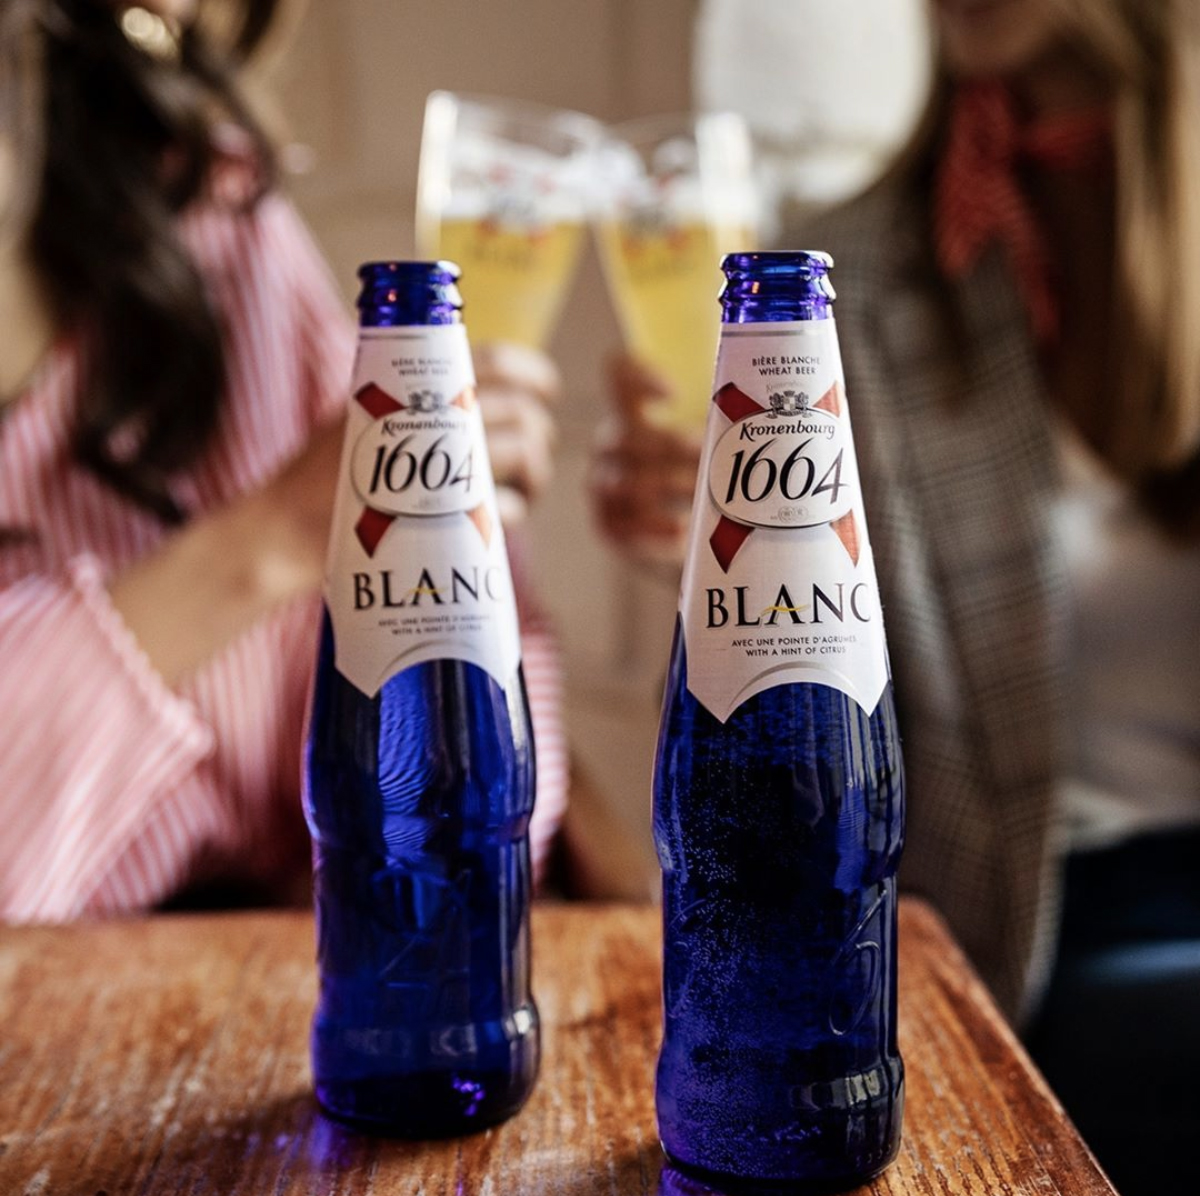 Purchase two packs of 1664 Blanc and two 1664 Blanc pints to win a luxurious 1664 private yacht experience - Alvinology